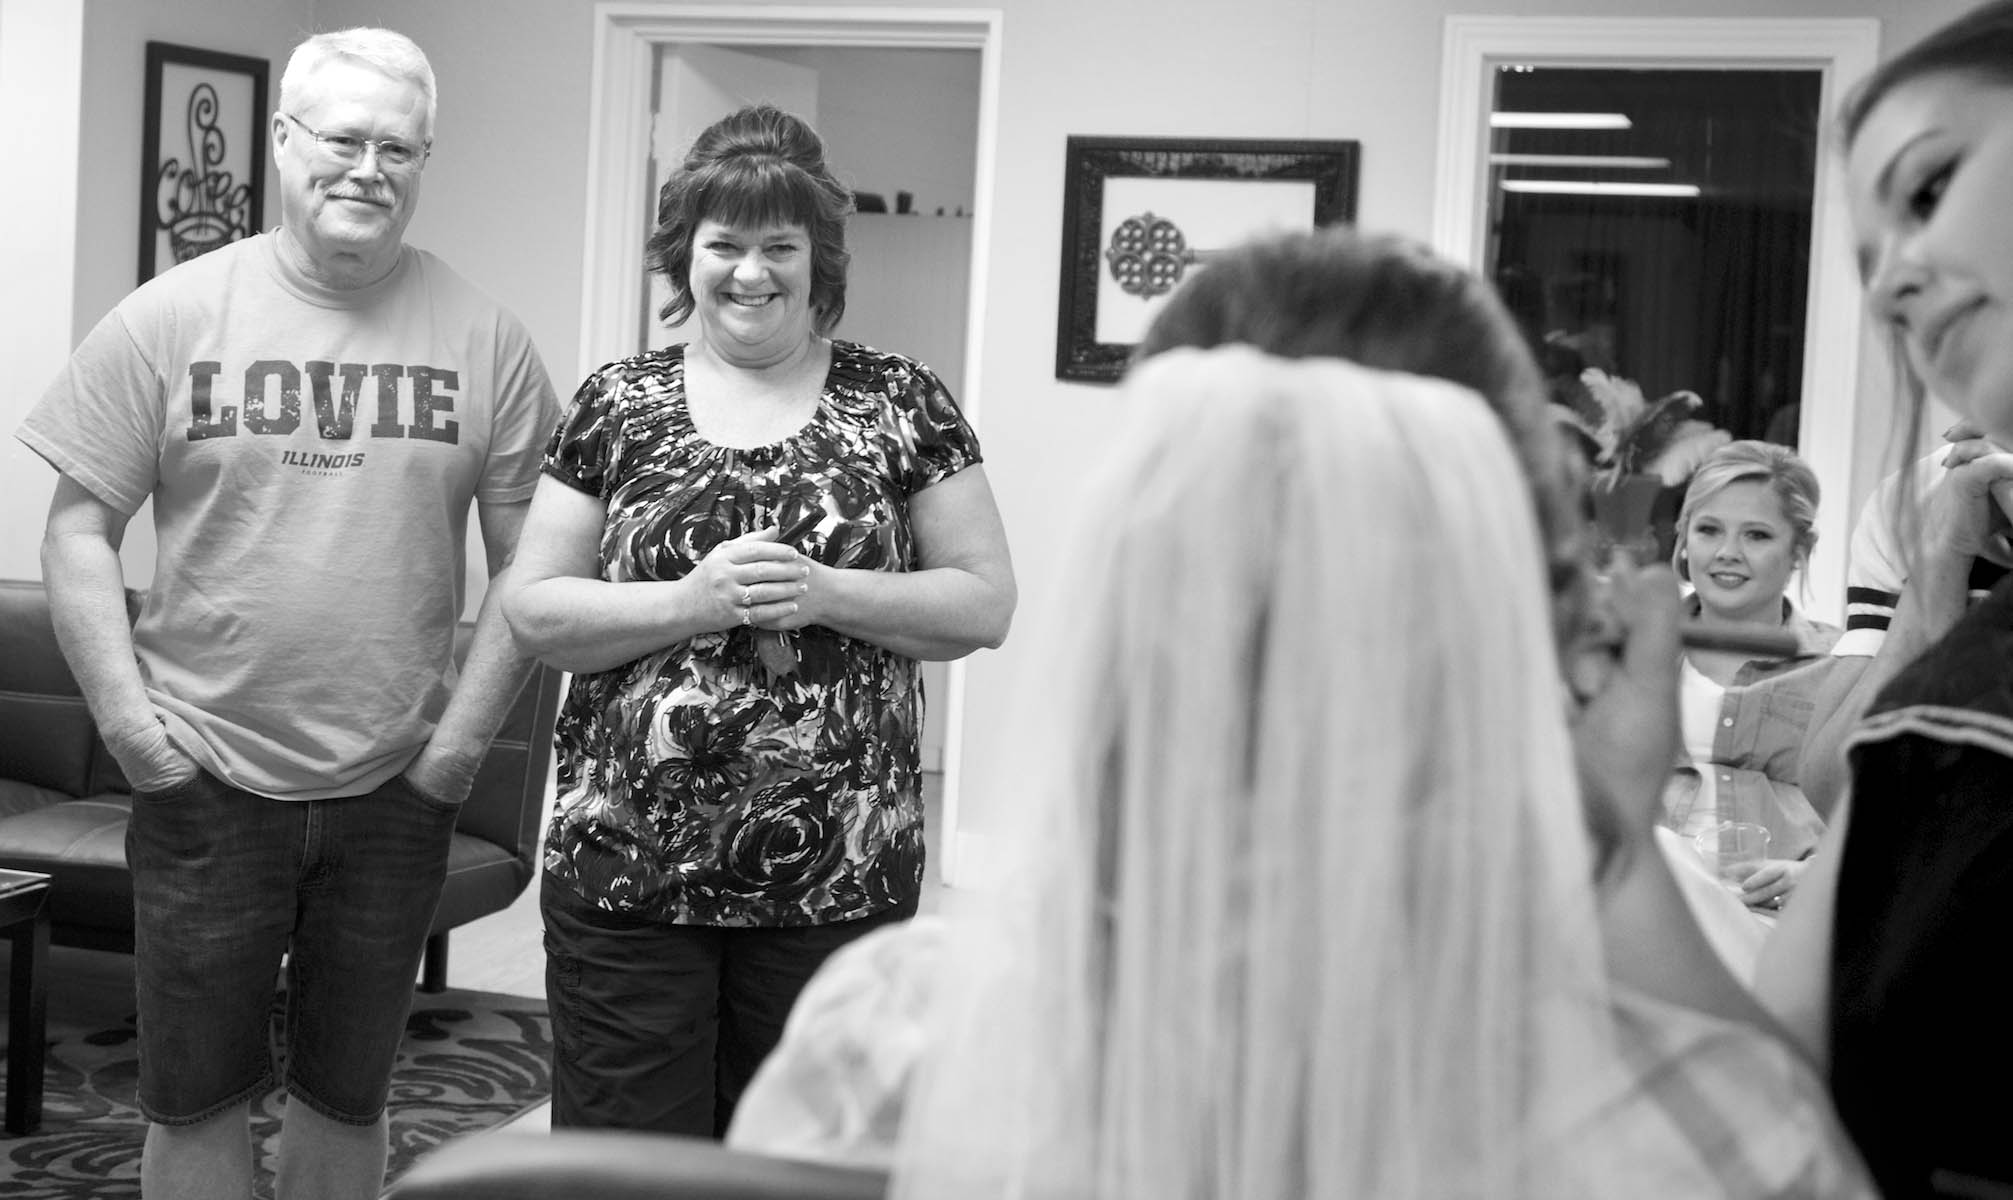 Alissa's mom and dad watch her get makeup done, at On the Clip Side. Wedding pictures by Tiffany & Steve of Warmowski Photography.